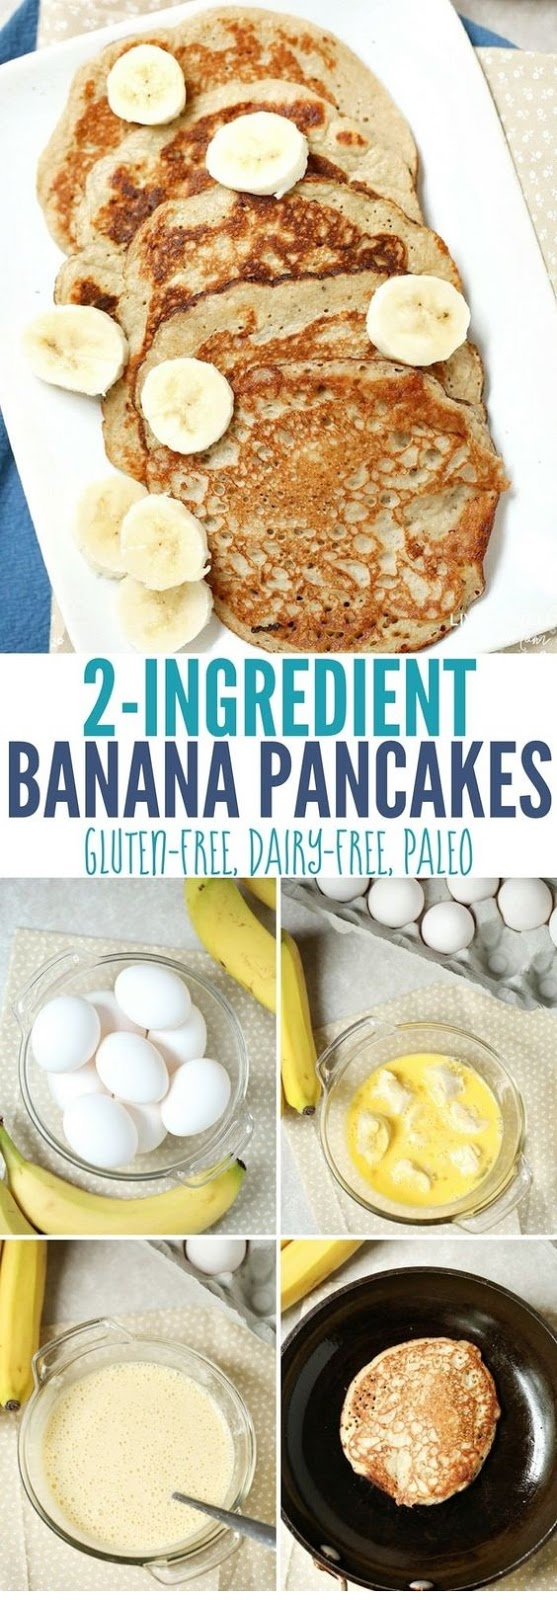 2-Ingredient Banana Pancakes